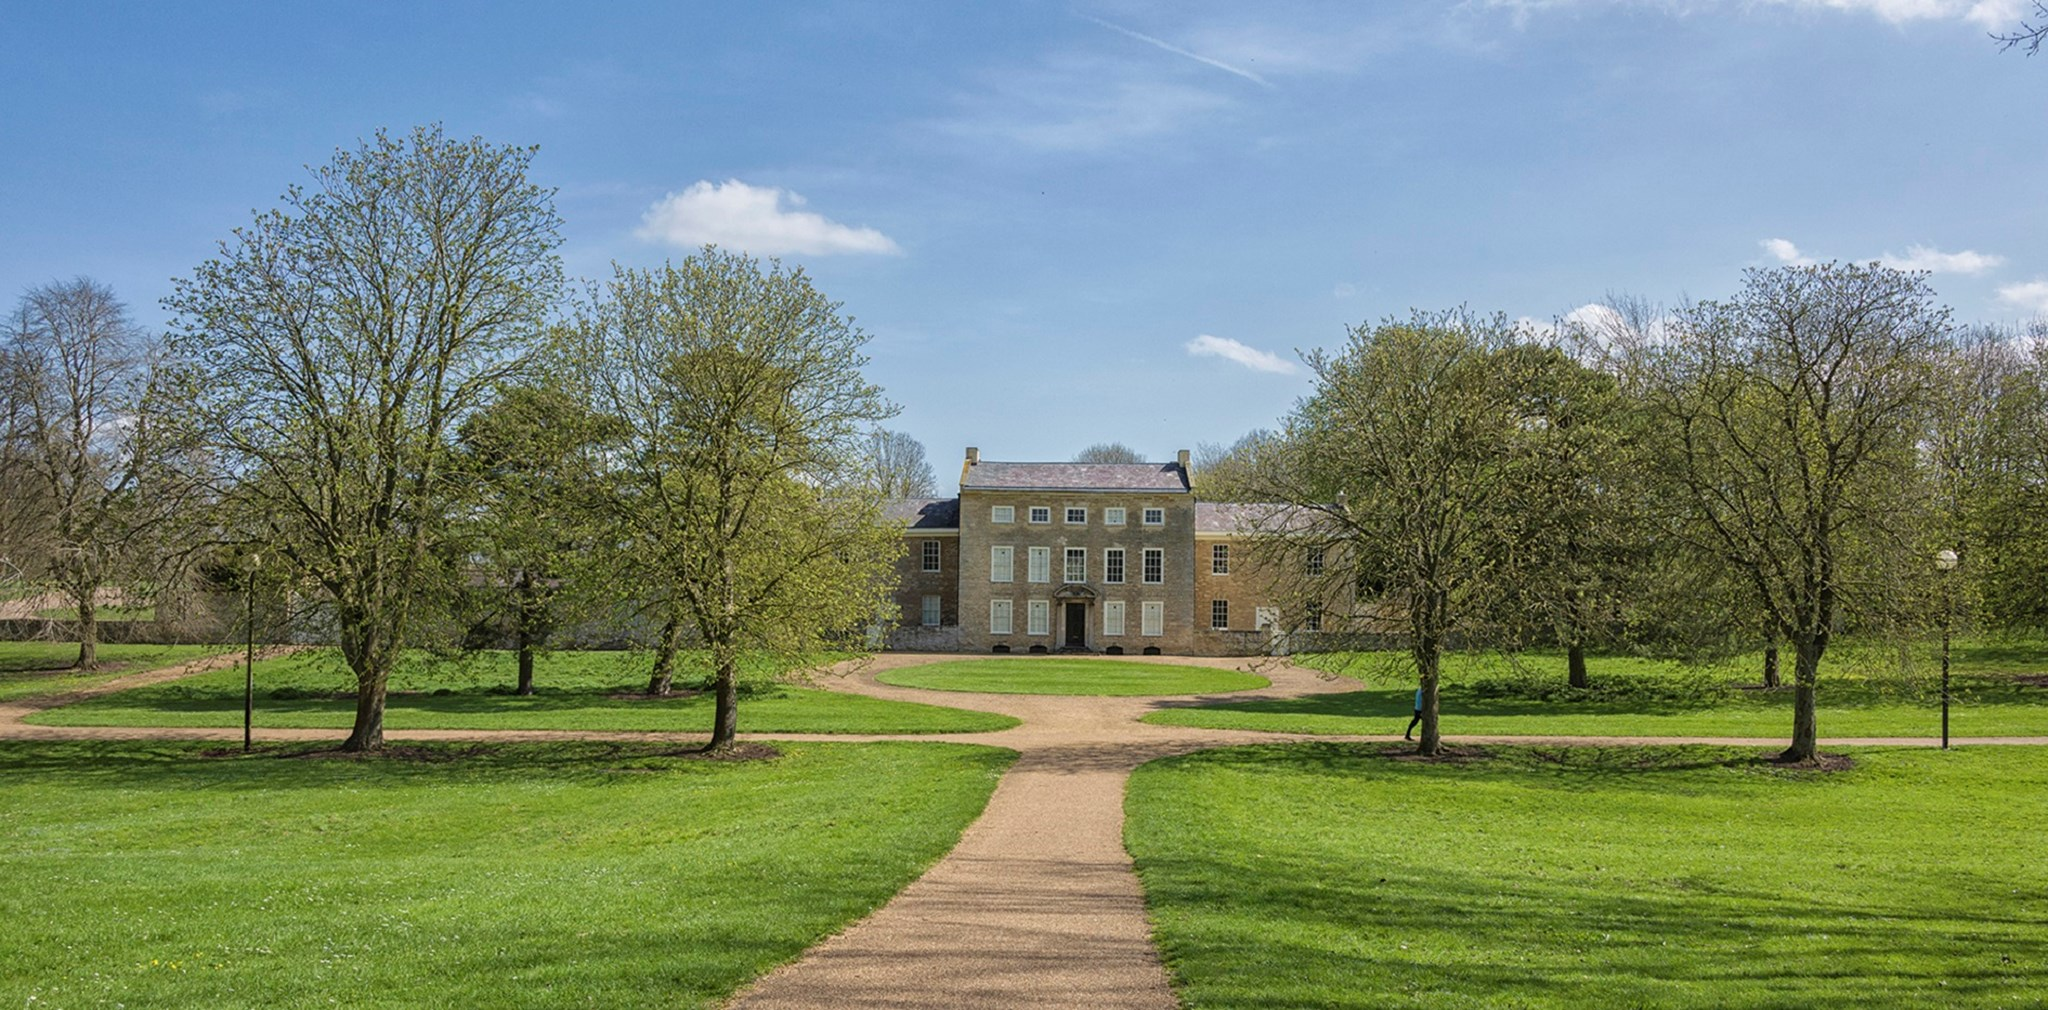 GLMP View of the Manor house across the Park rs.jpg